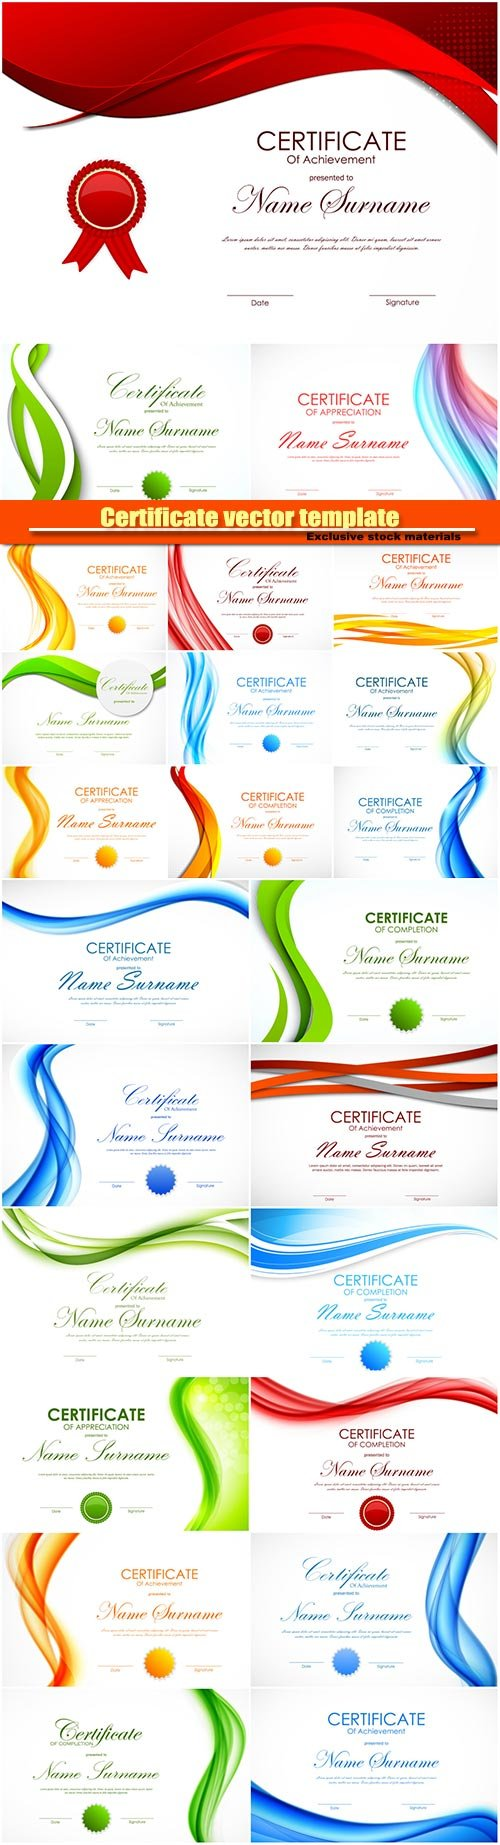 Certificate vector template with light dynamic color wavy curved background and seal